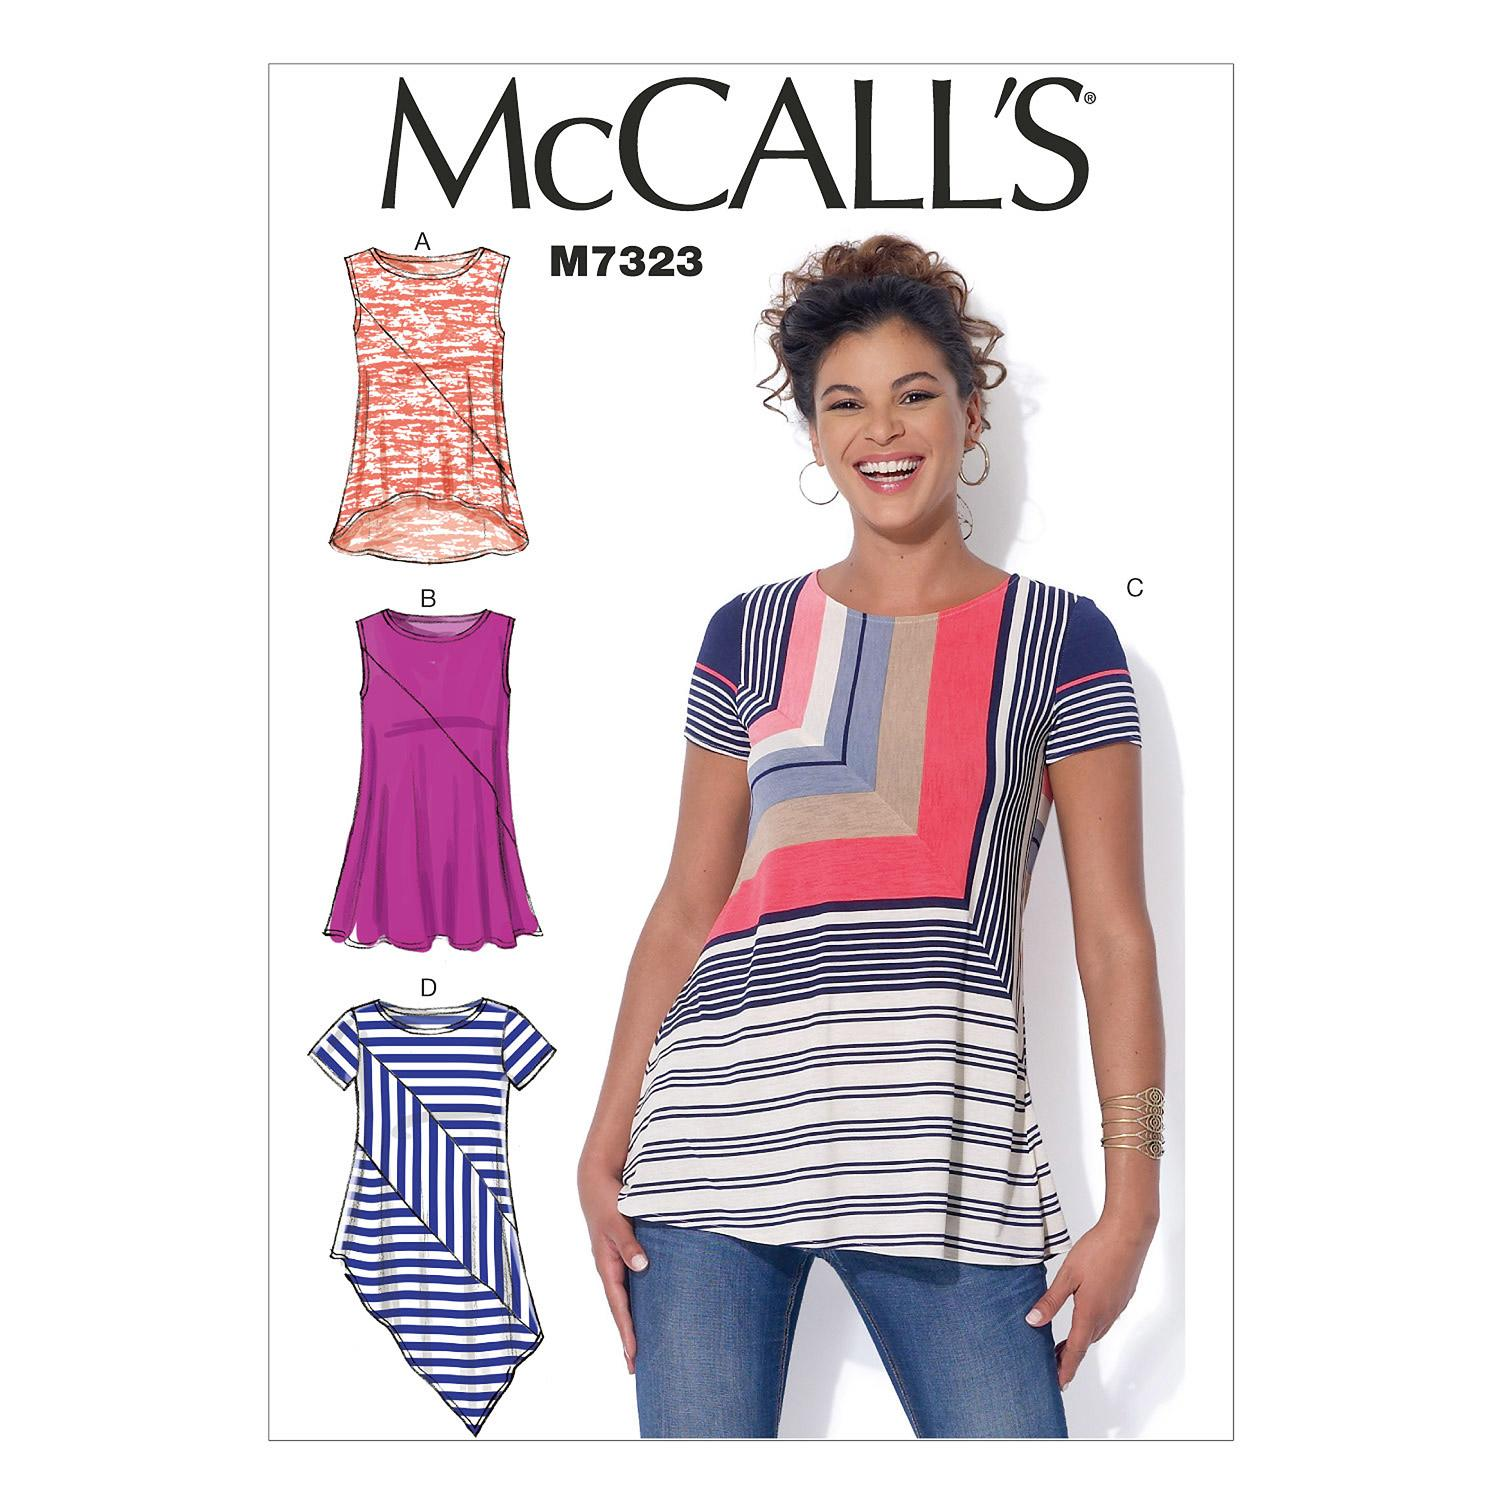 McCalls M7323 Tops/Tunics